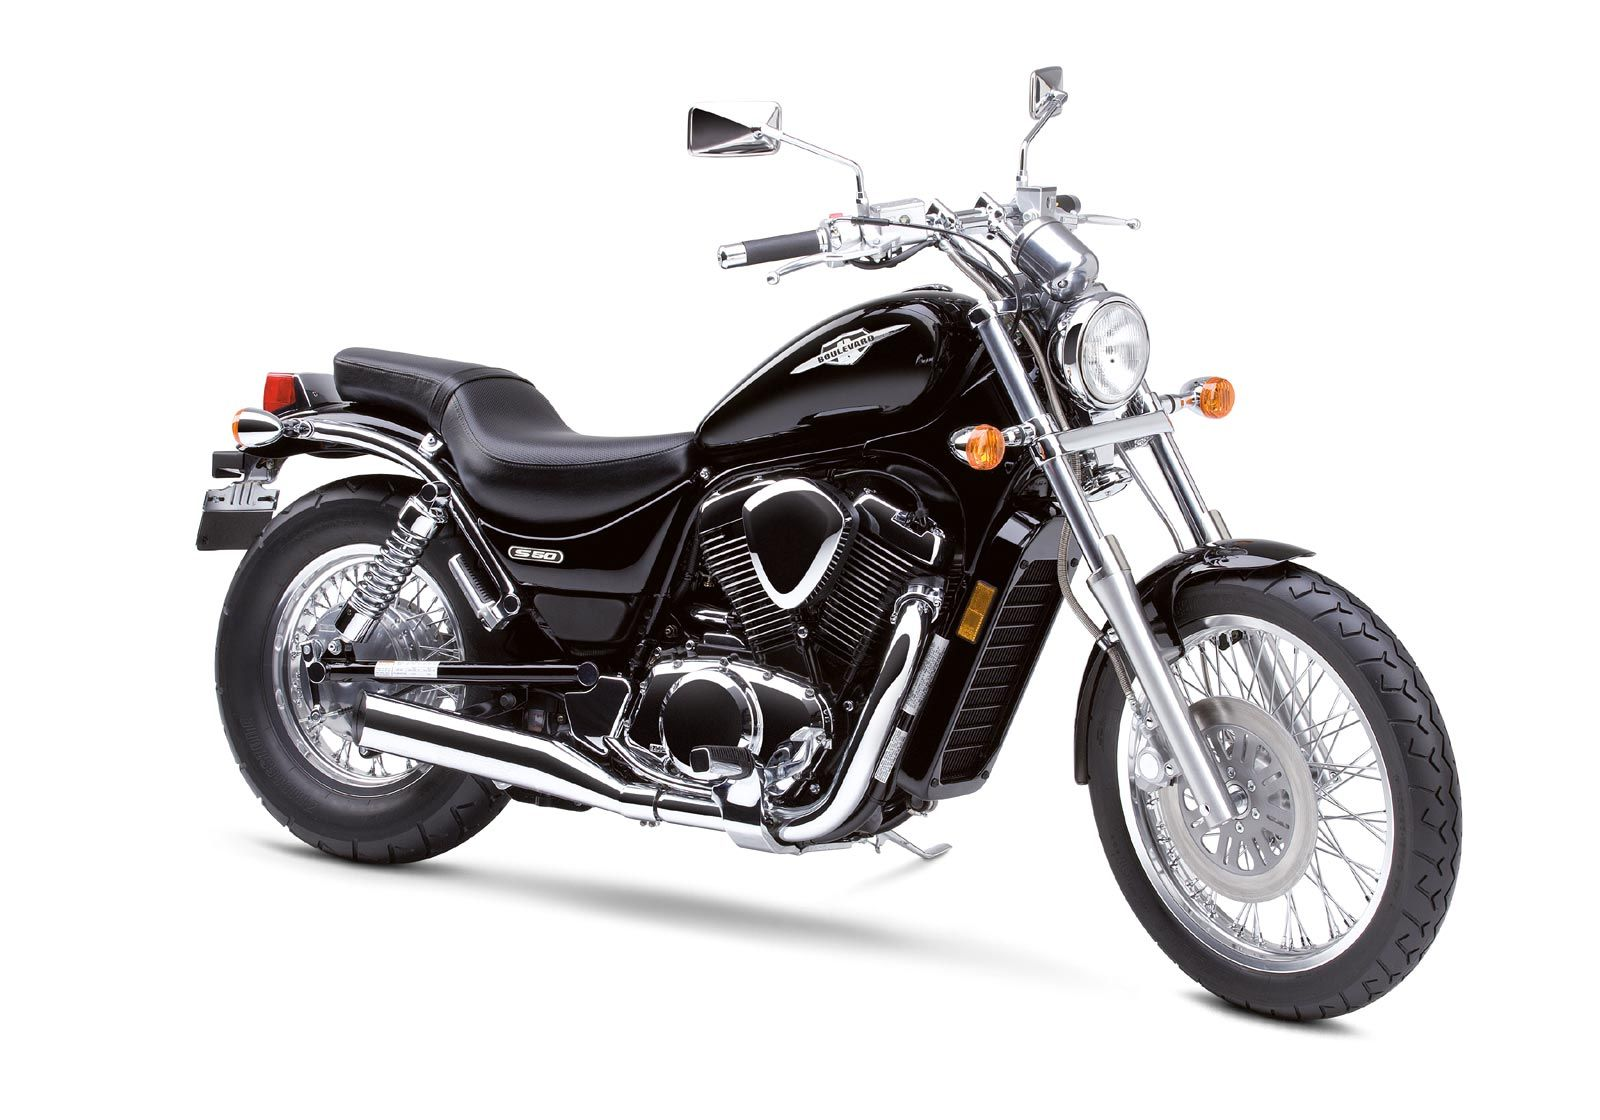 2008 Suzuki Boulevard S50 Suzuki Boulevard Suzuki Motorcycles For Sale